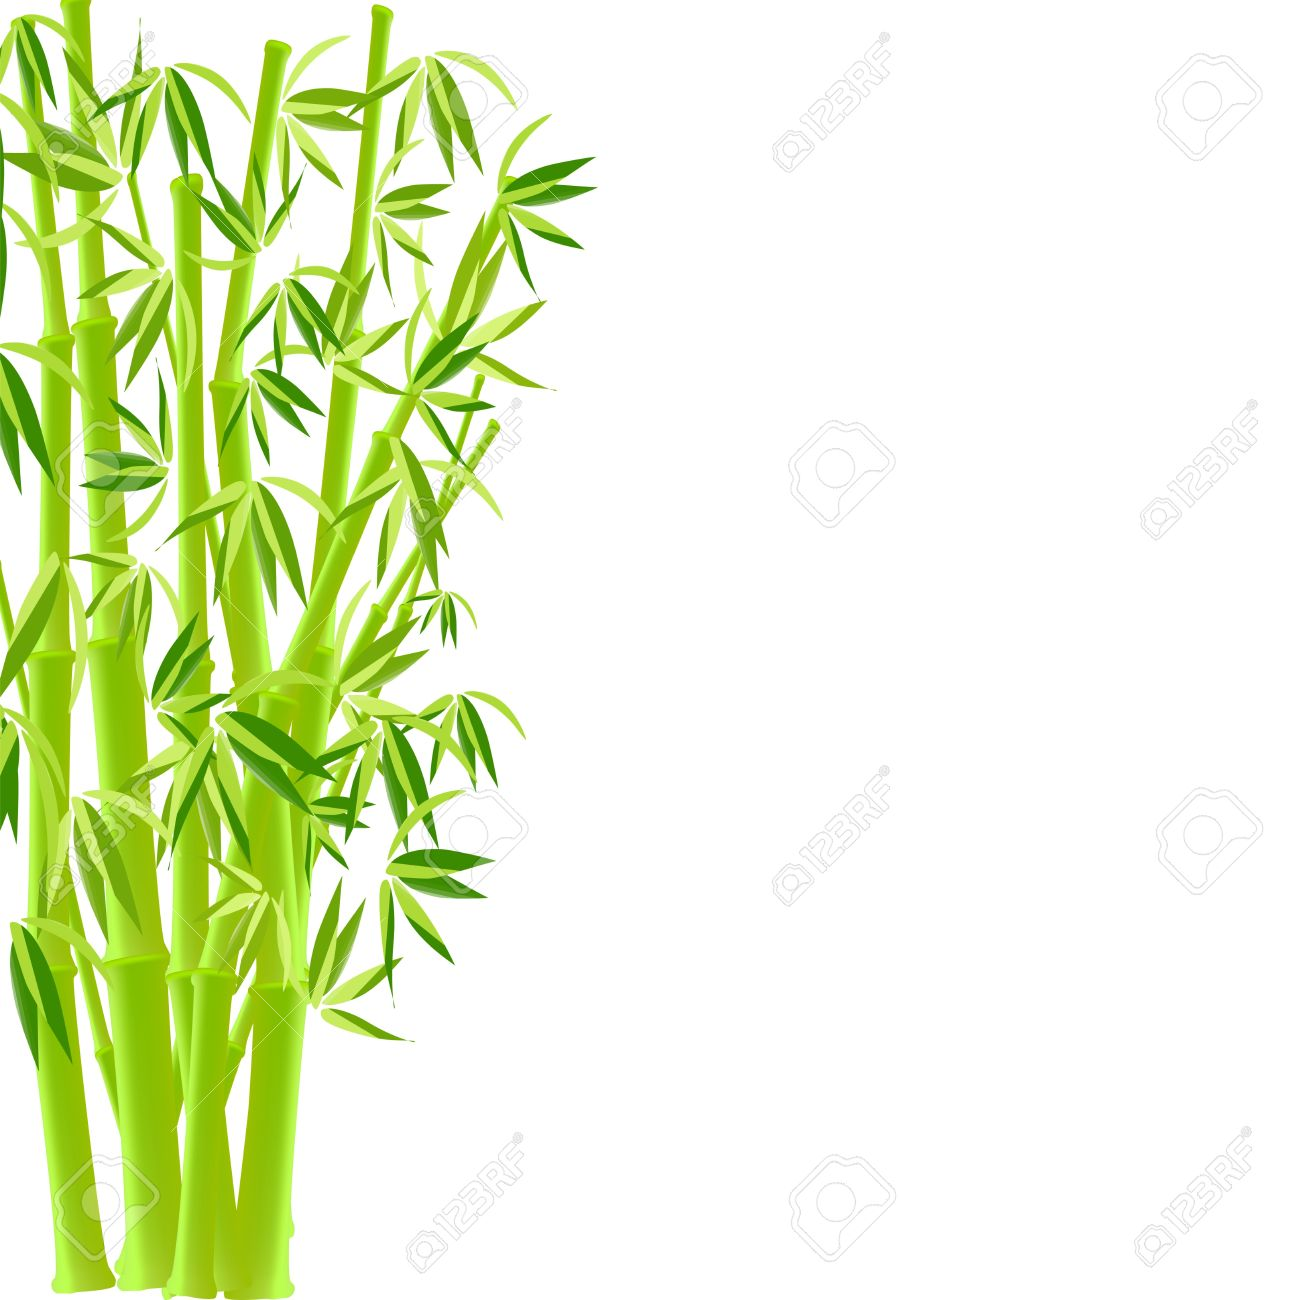 vector illustration of bamboo royalty free cliparts vectors and rh 123rf com bamboo vector images